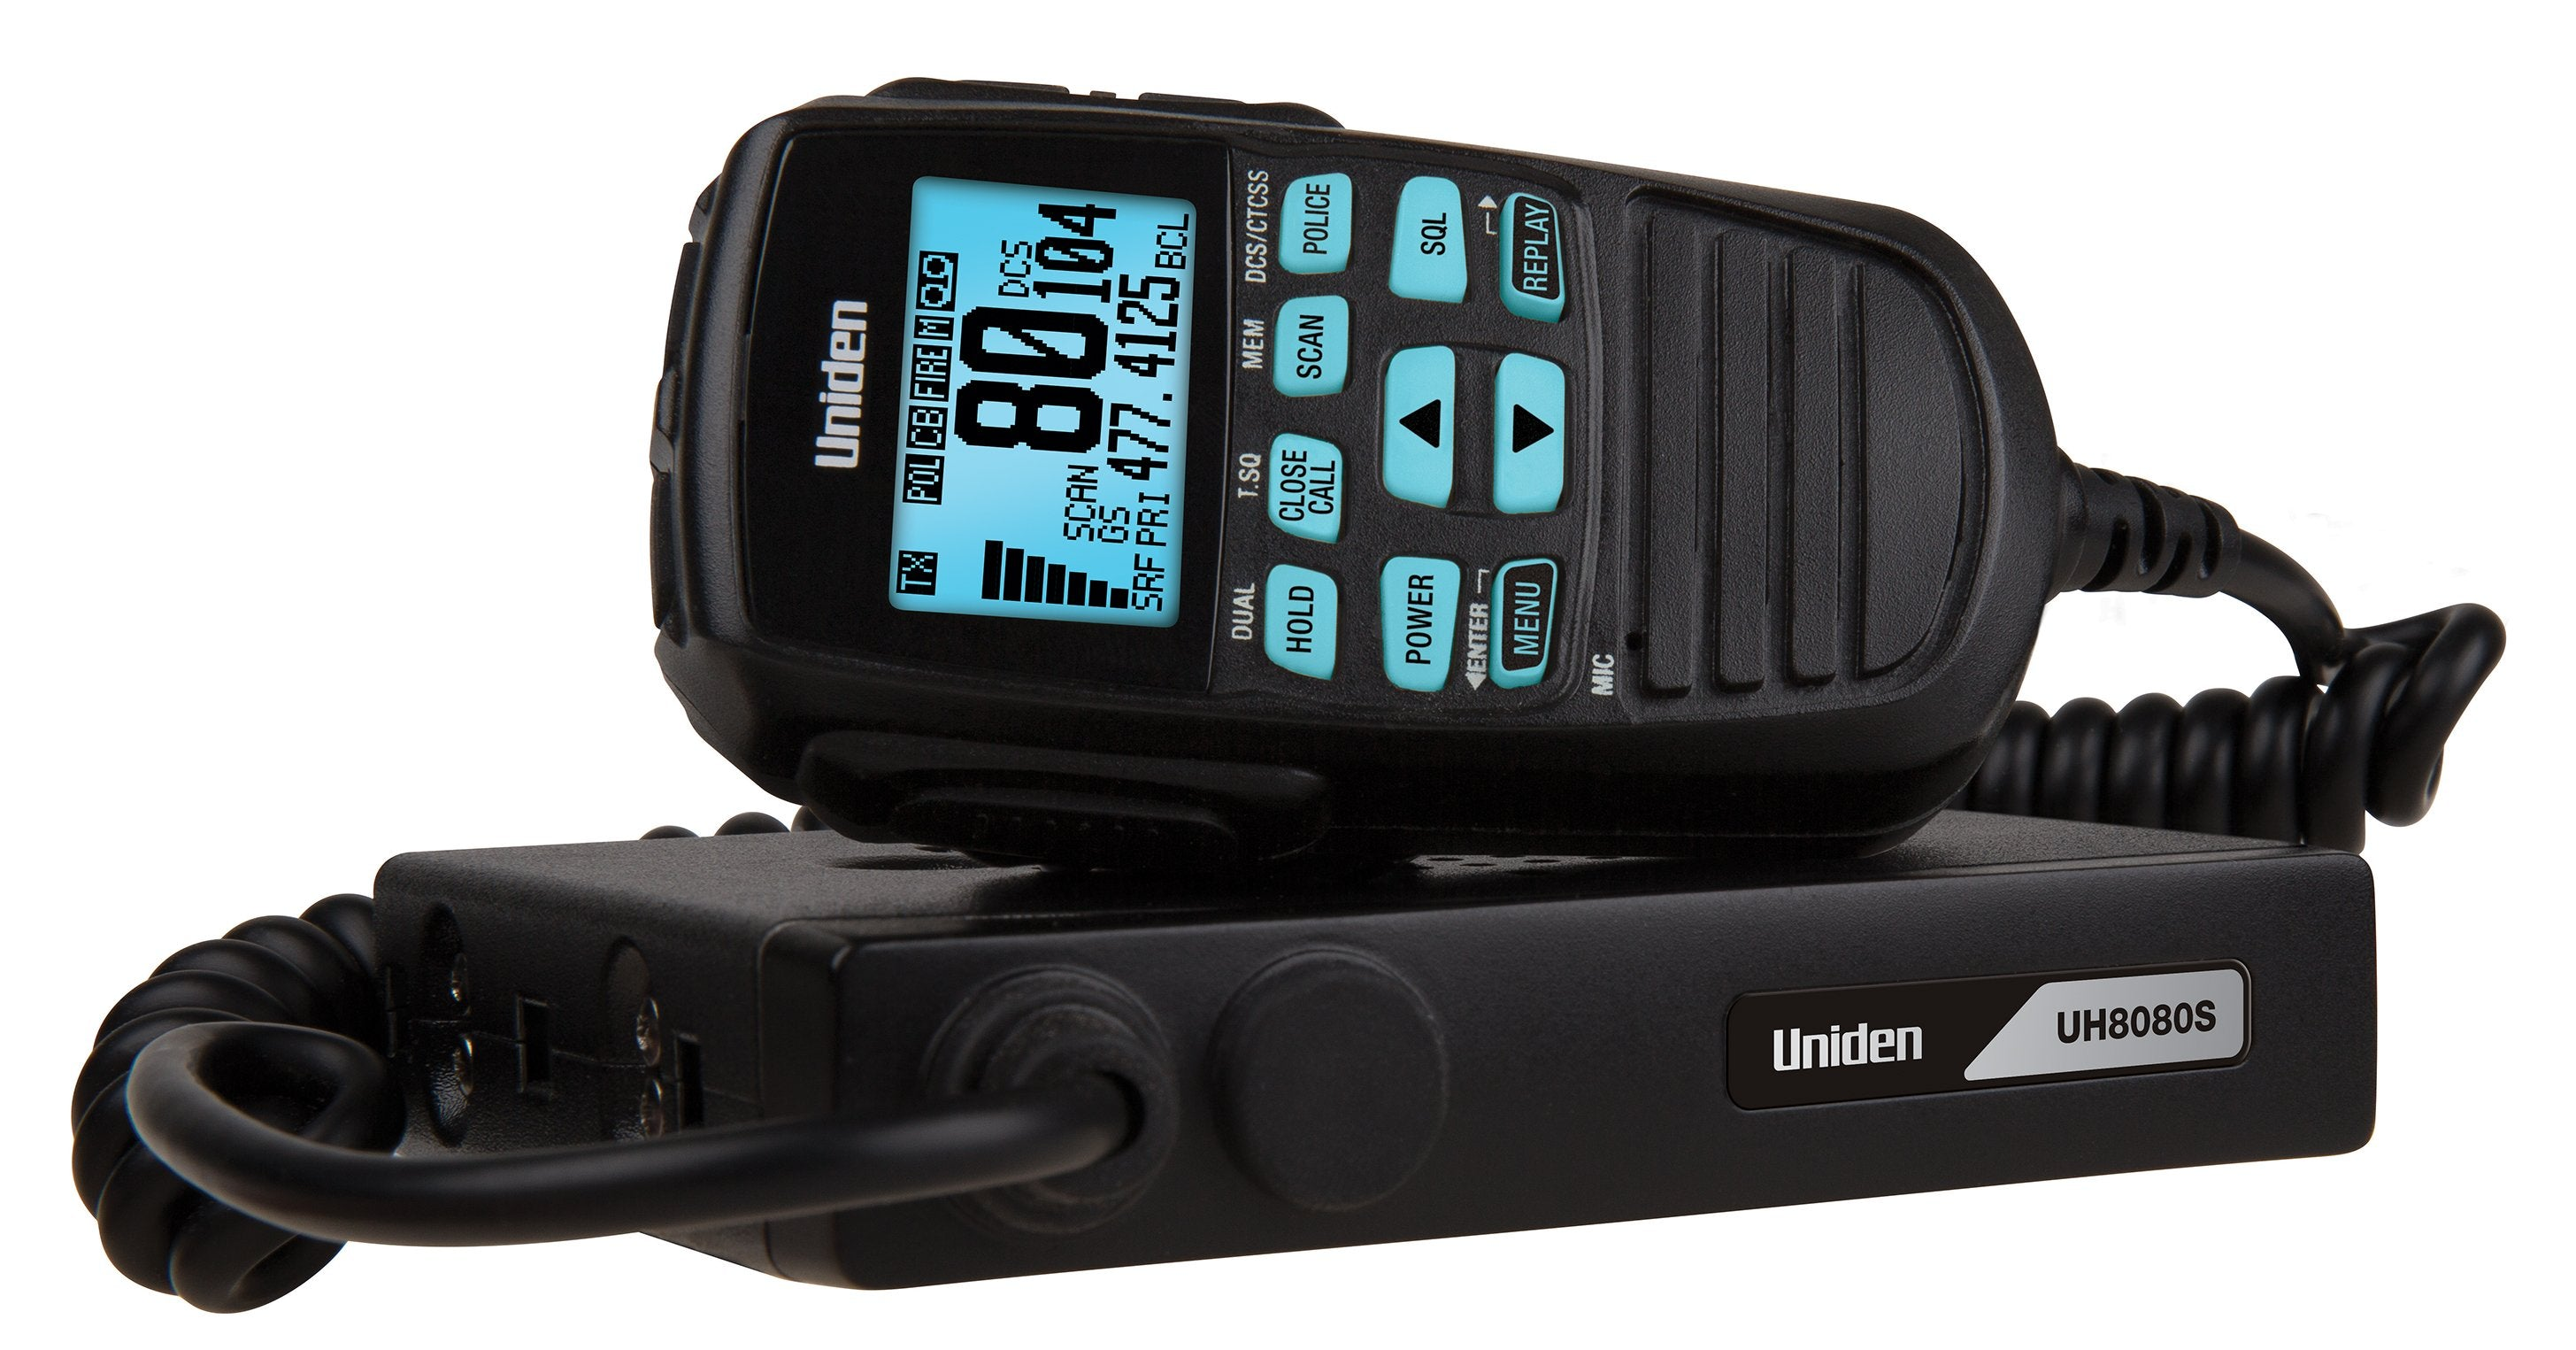 Uniden Mobile CB Radio UH8080S